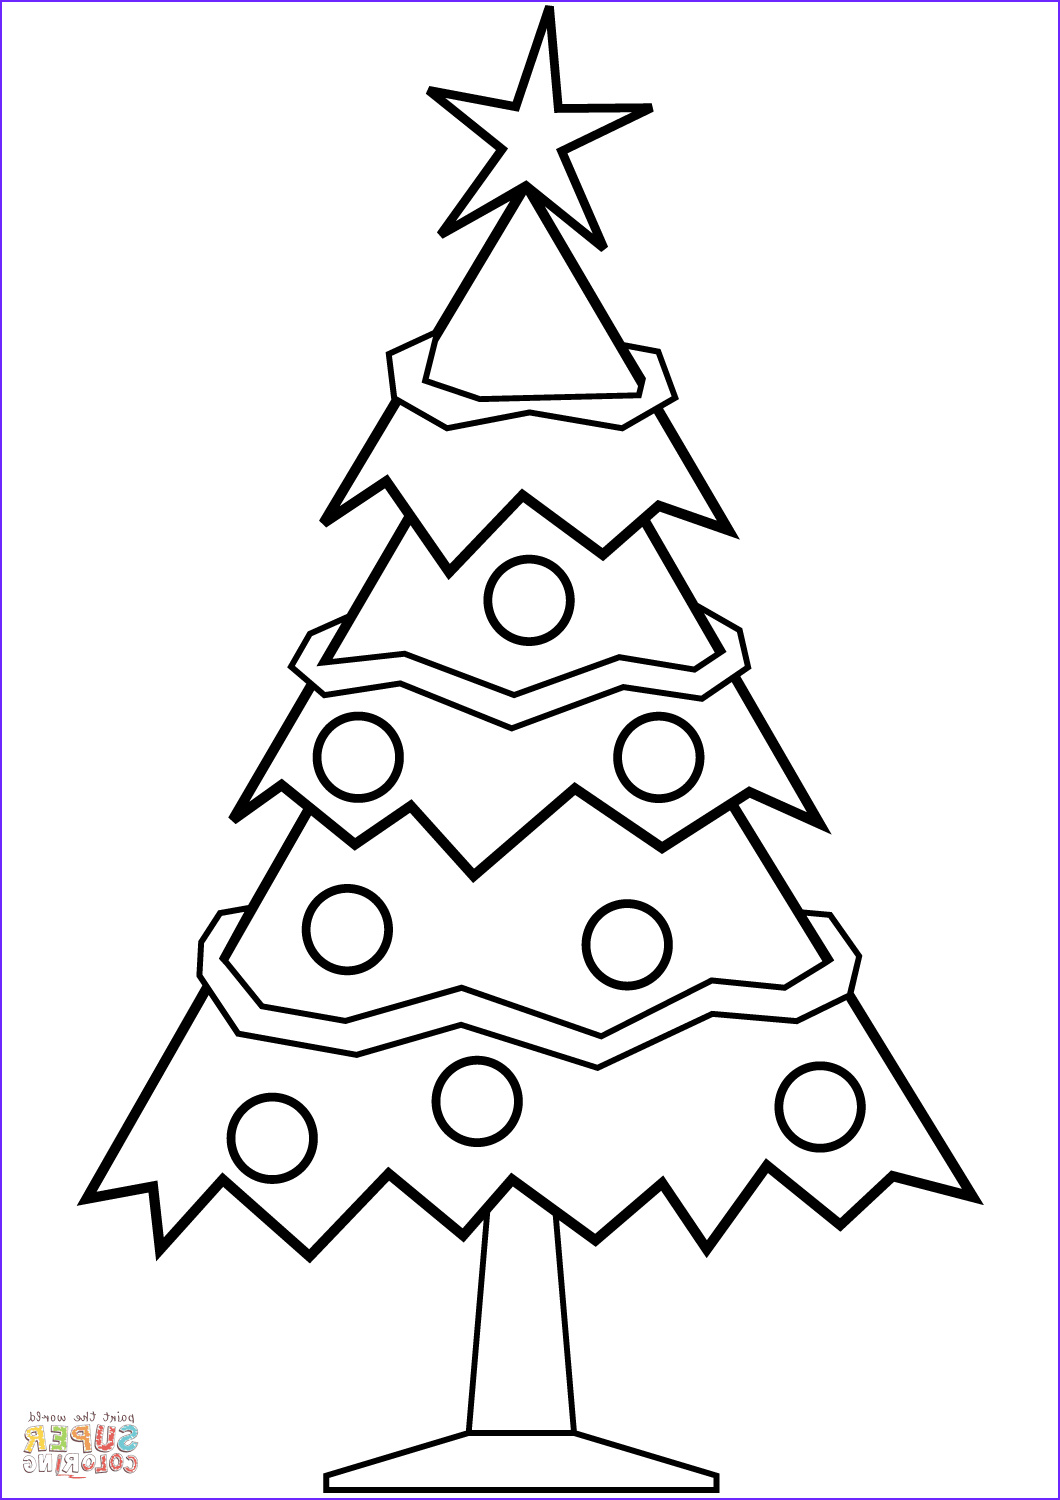 Coloring Pages Christmas Tree Elegant Photos Simple Christmas Tree Coloring Page